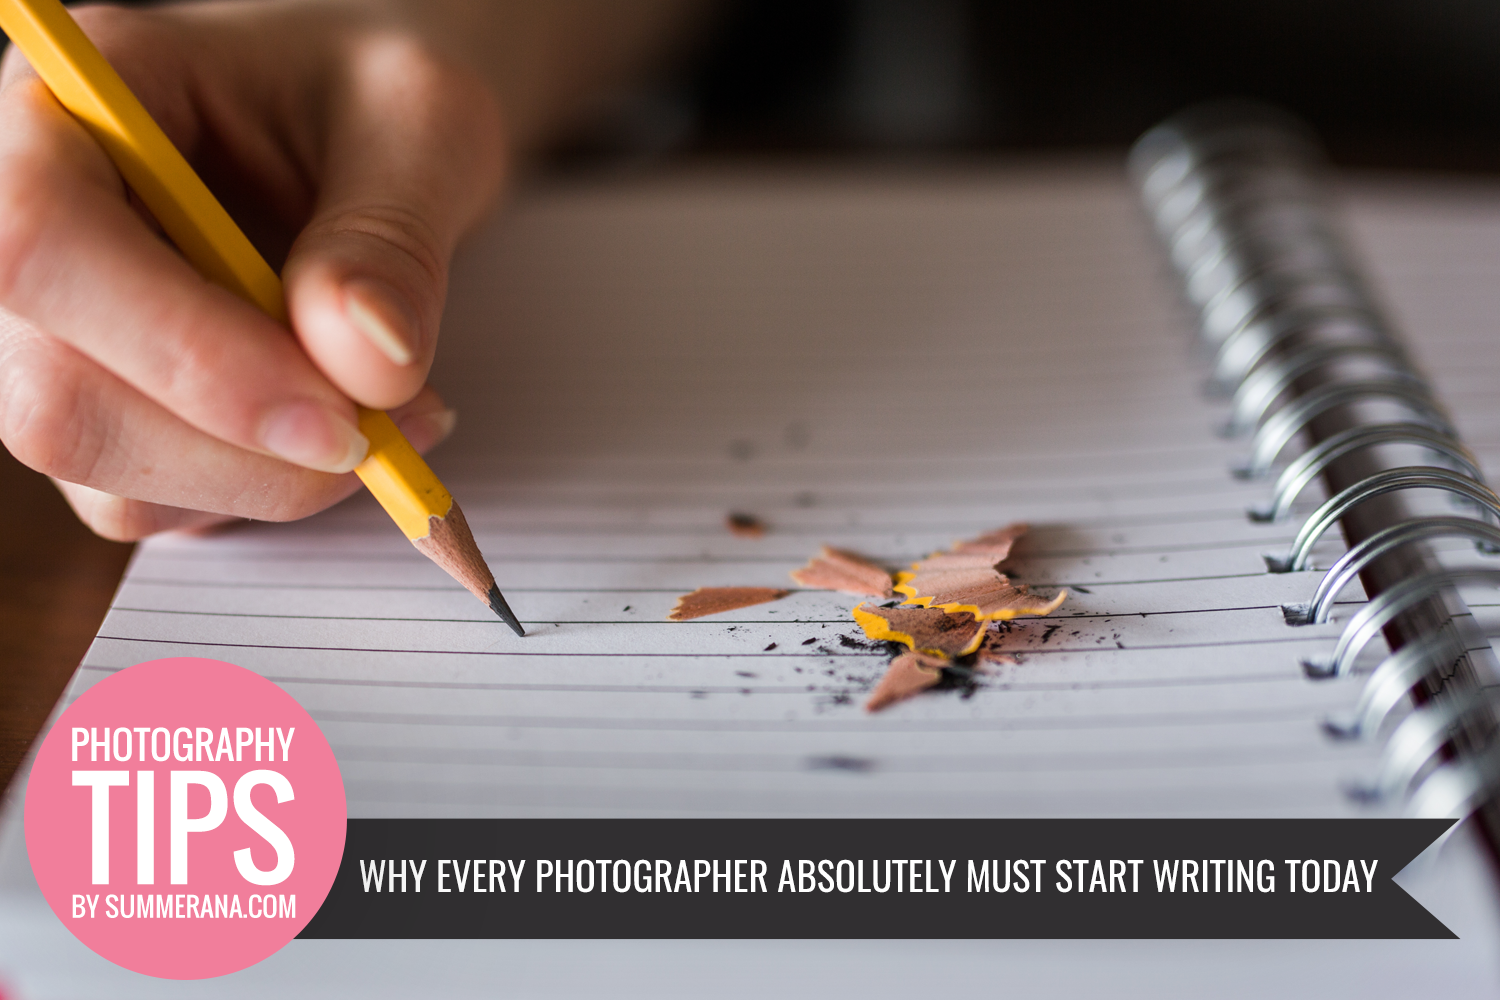 Why-Every-Photographer-Absolutely-Must-Start-Writing-Today